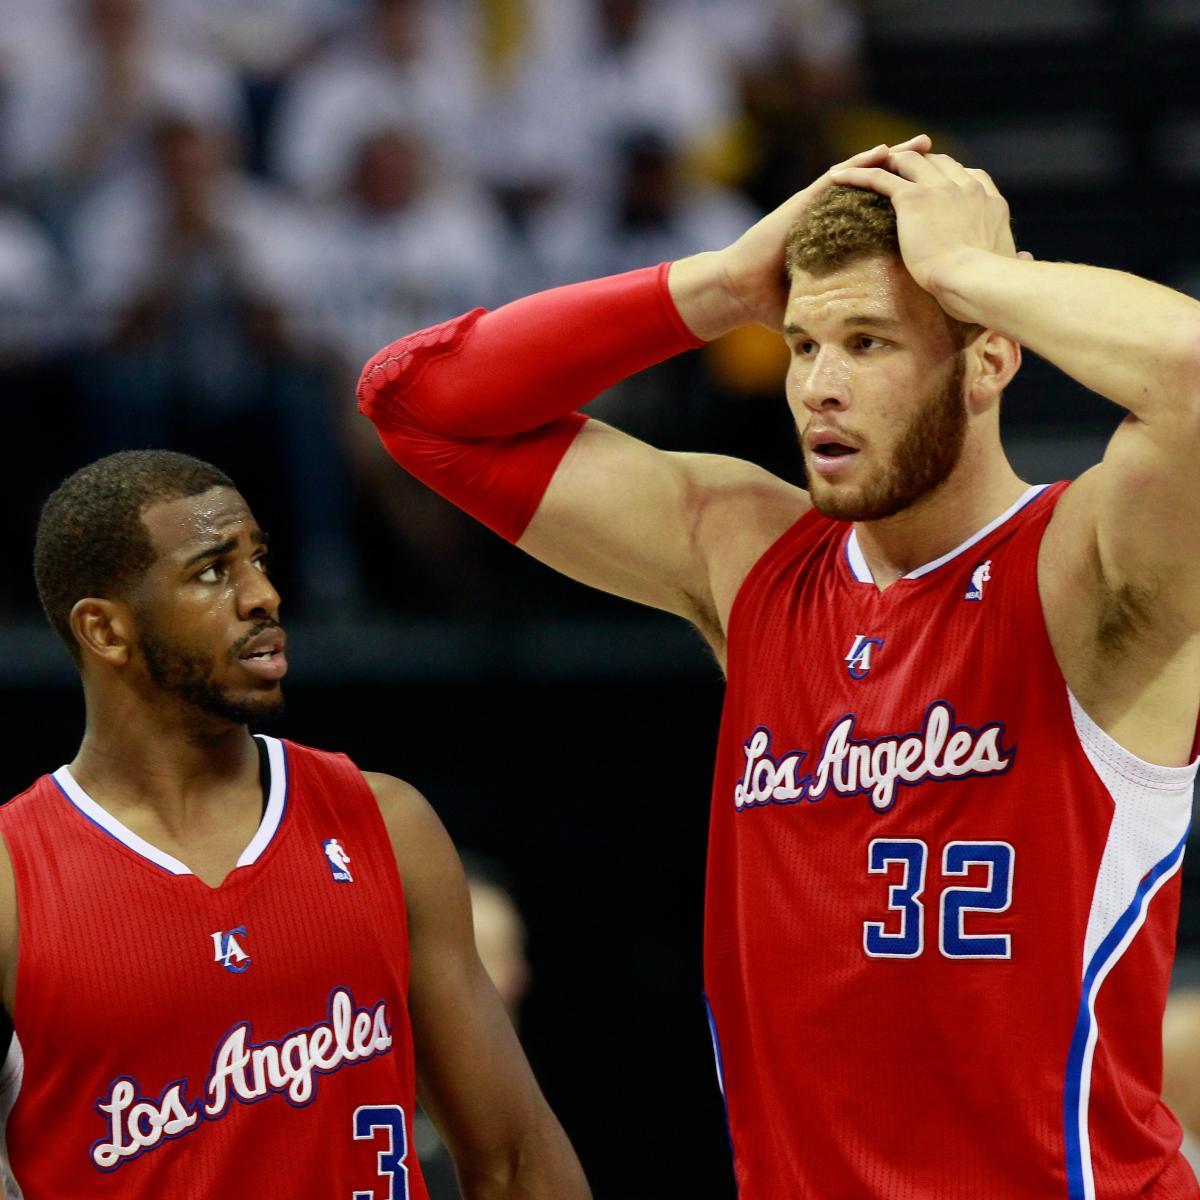 Denver Nuggets Predictions: Denver Nuggets Vs. Los Angeles Clippers: Preview, Analysis